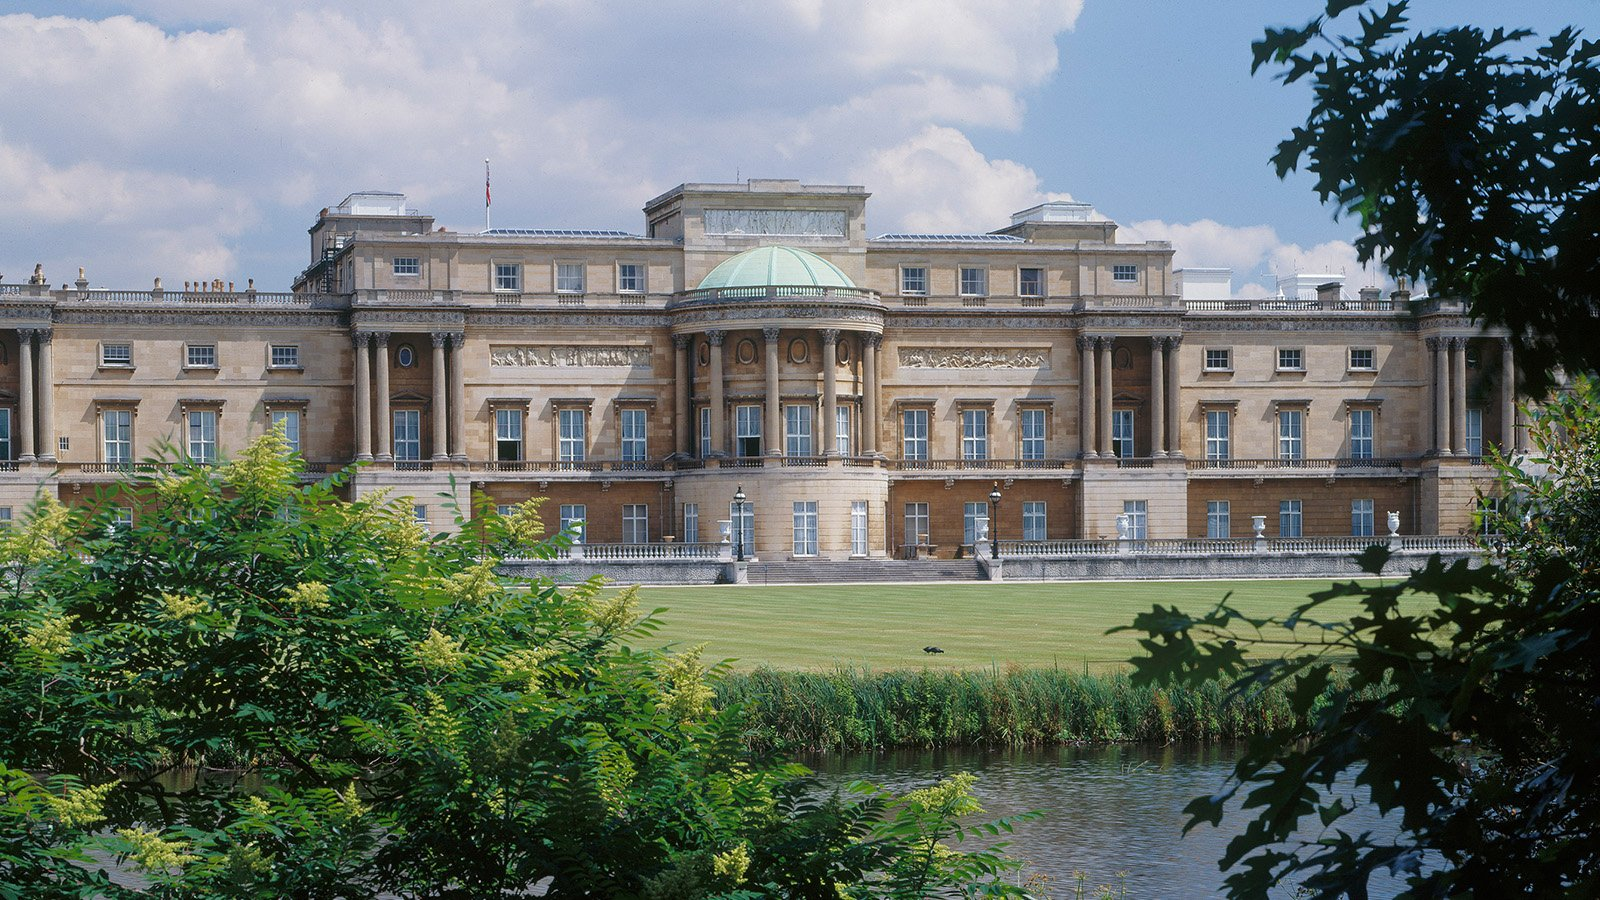 Buckingham palace gardens ideas 2019 summer dorchester collection what to do